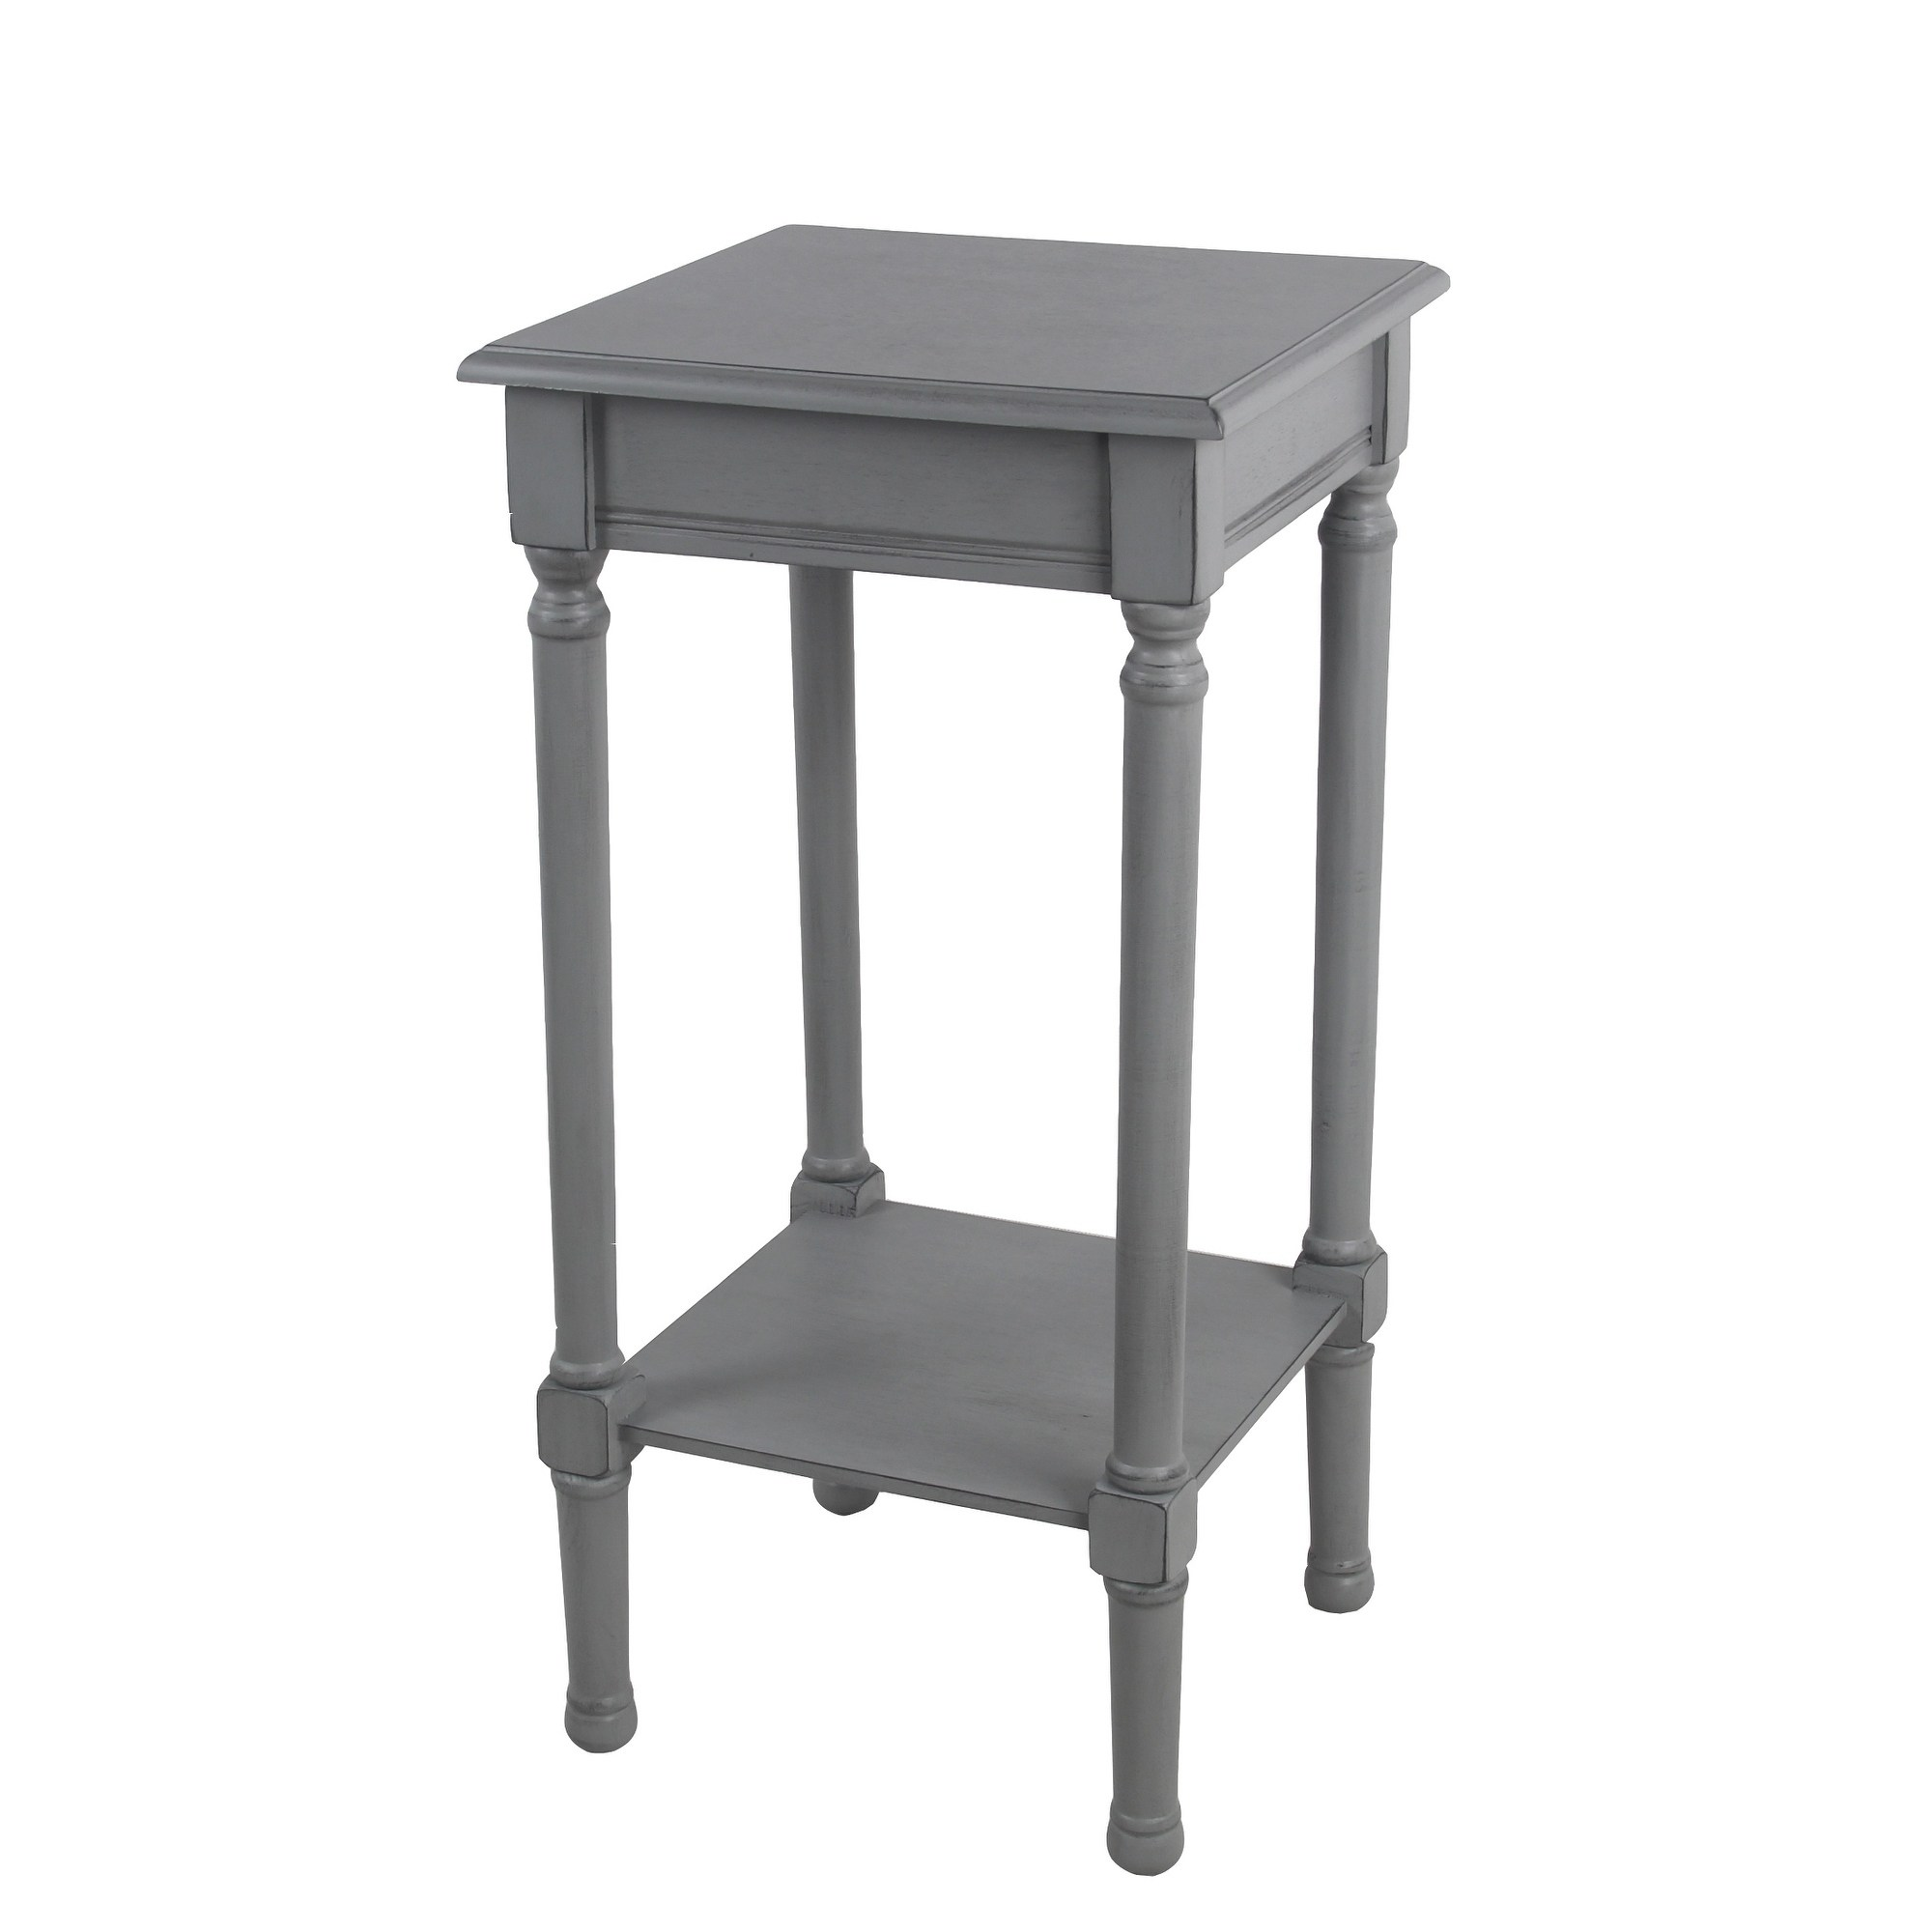 privilege vendee gray square accent table easy assemble tools required free shipping today ave six piece fabric chair and set nautical bathroom light fixtures narrow hallway